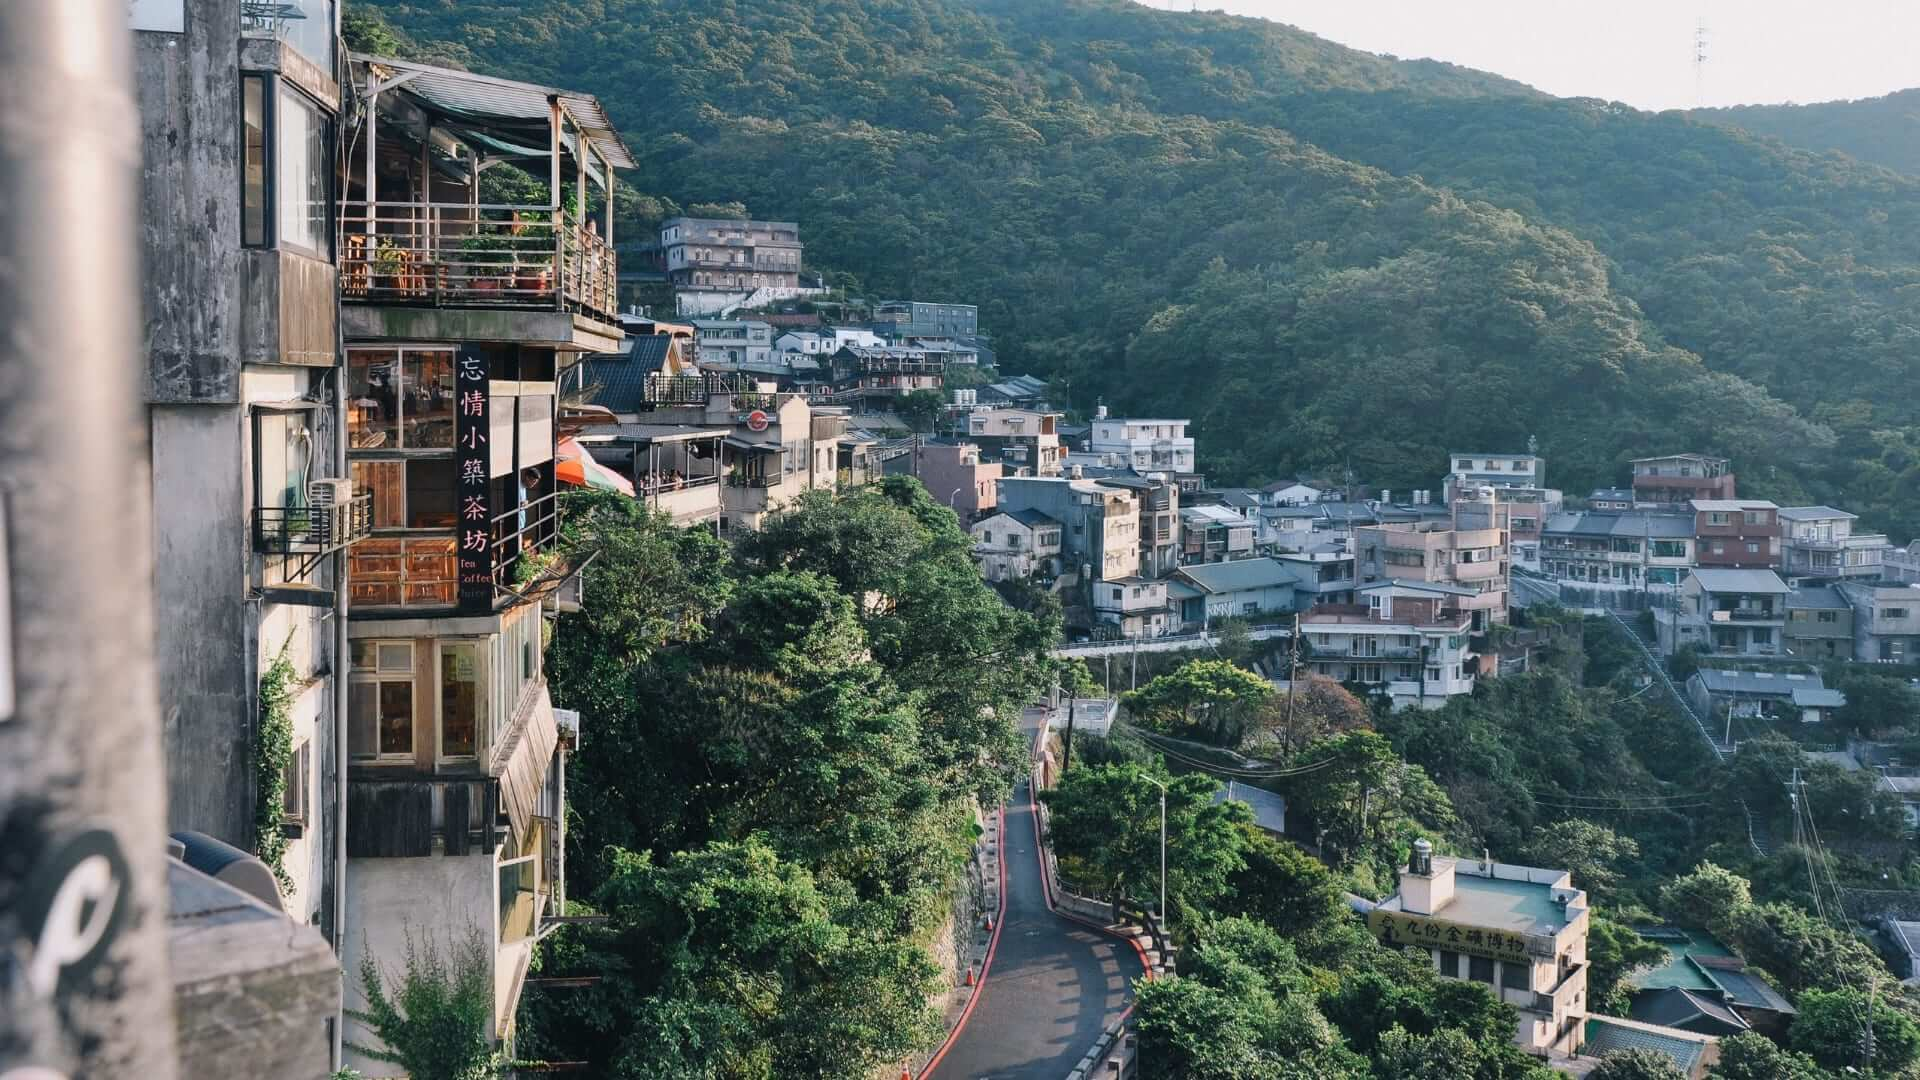 A village made of old houses on the side of a mountain in Taiwan.